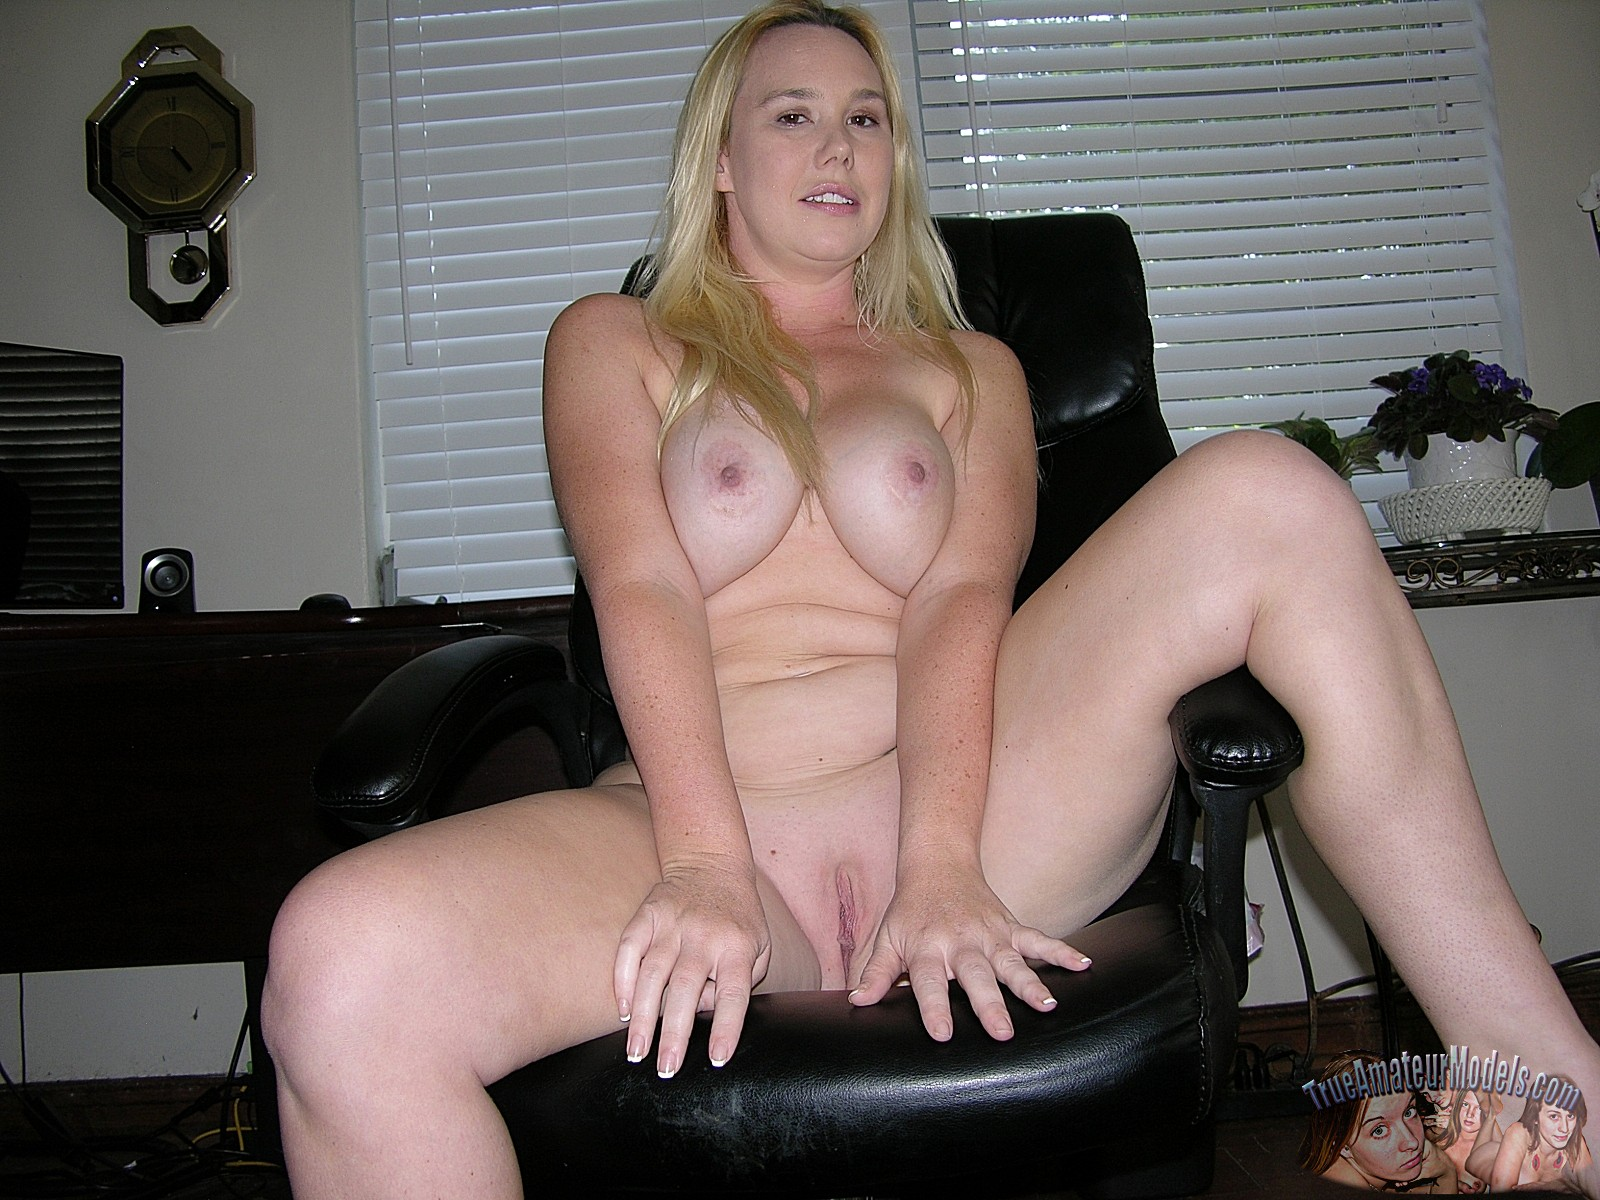 Big blonde amateur nude